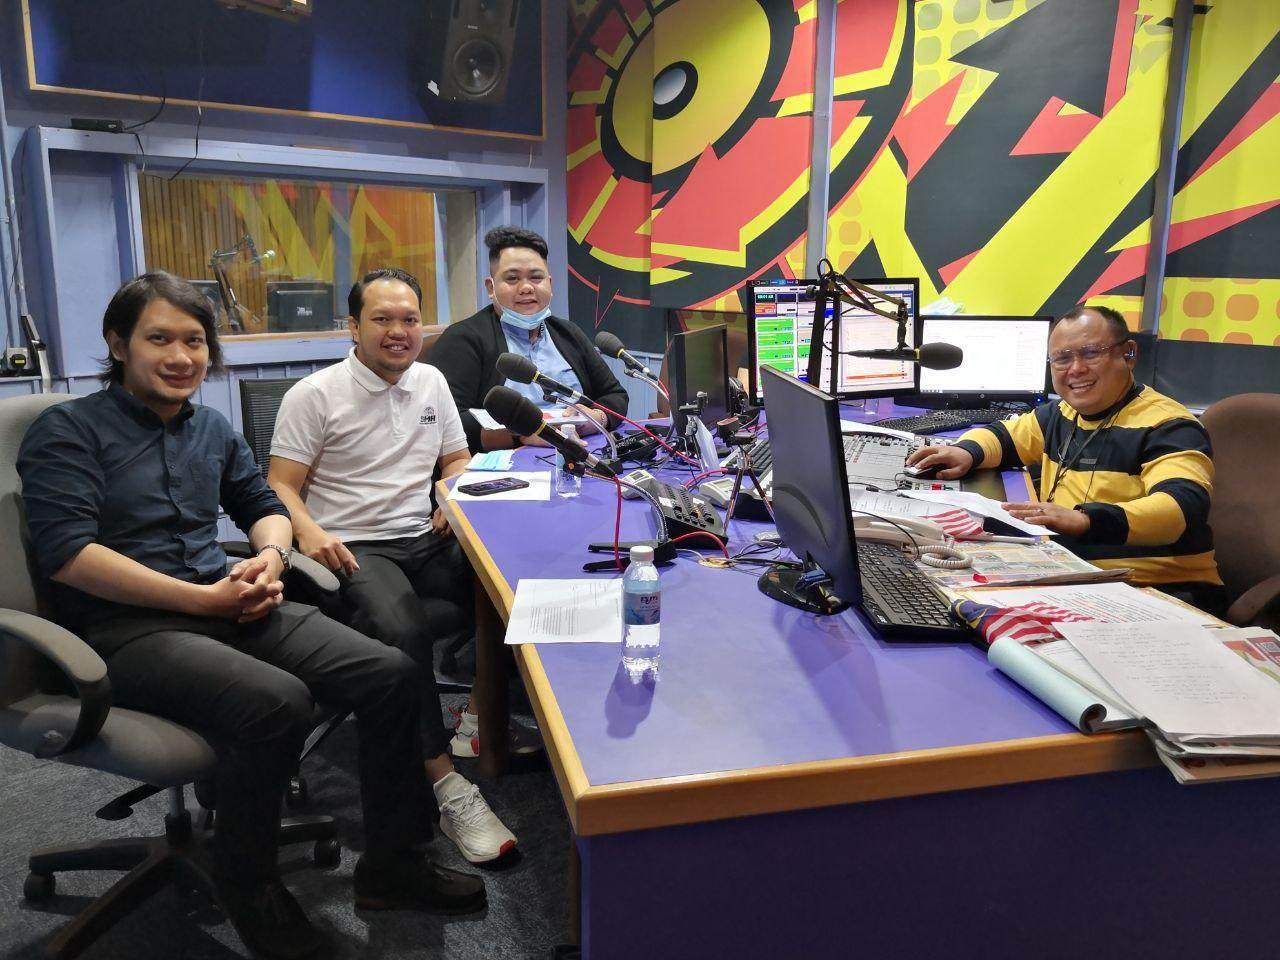 (from left) SMA assistant officer Hafeez Rosland, Faizal, AZAM communication officer Hakim Junaidi and Sarawak FM broadcaster Azman Johari pose for a photo call after the radio interview.